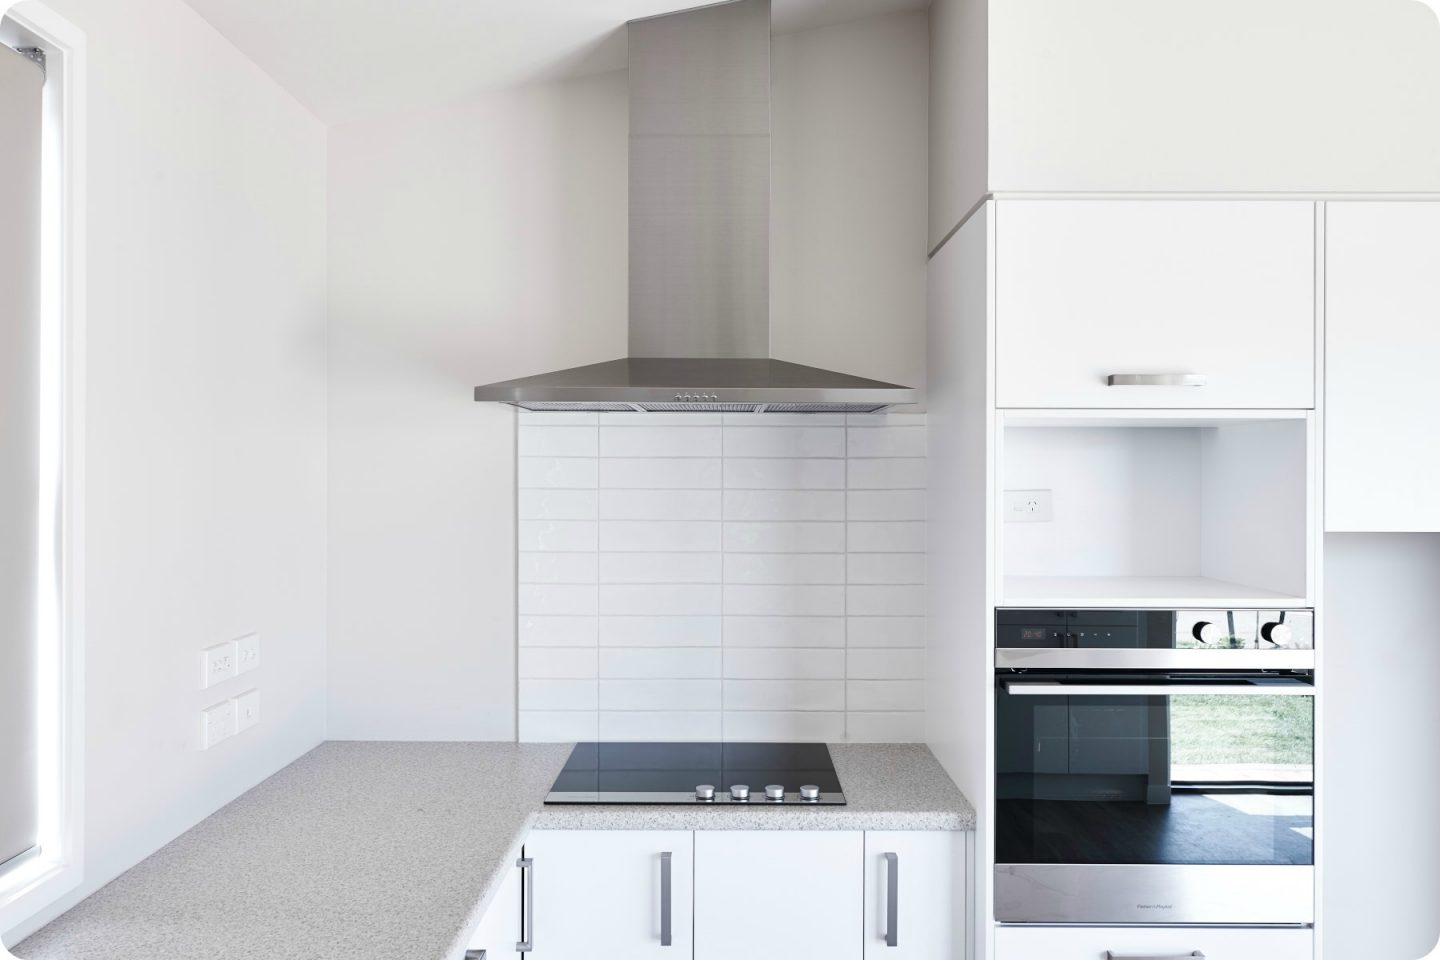 Delightful DIY: How To Install A Range Hood